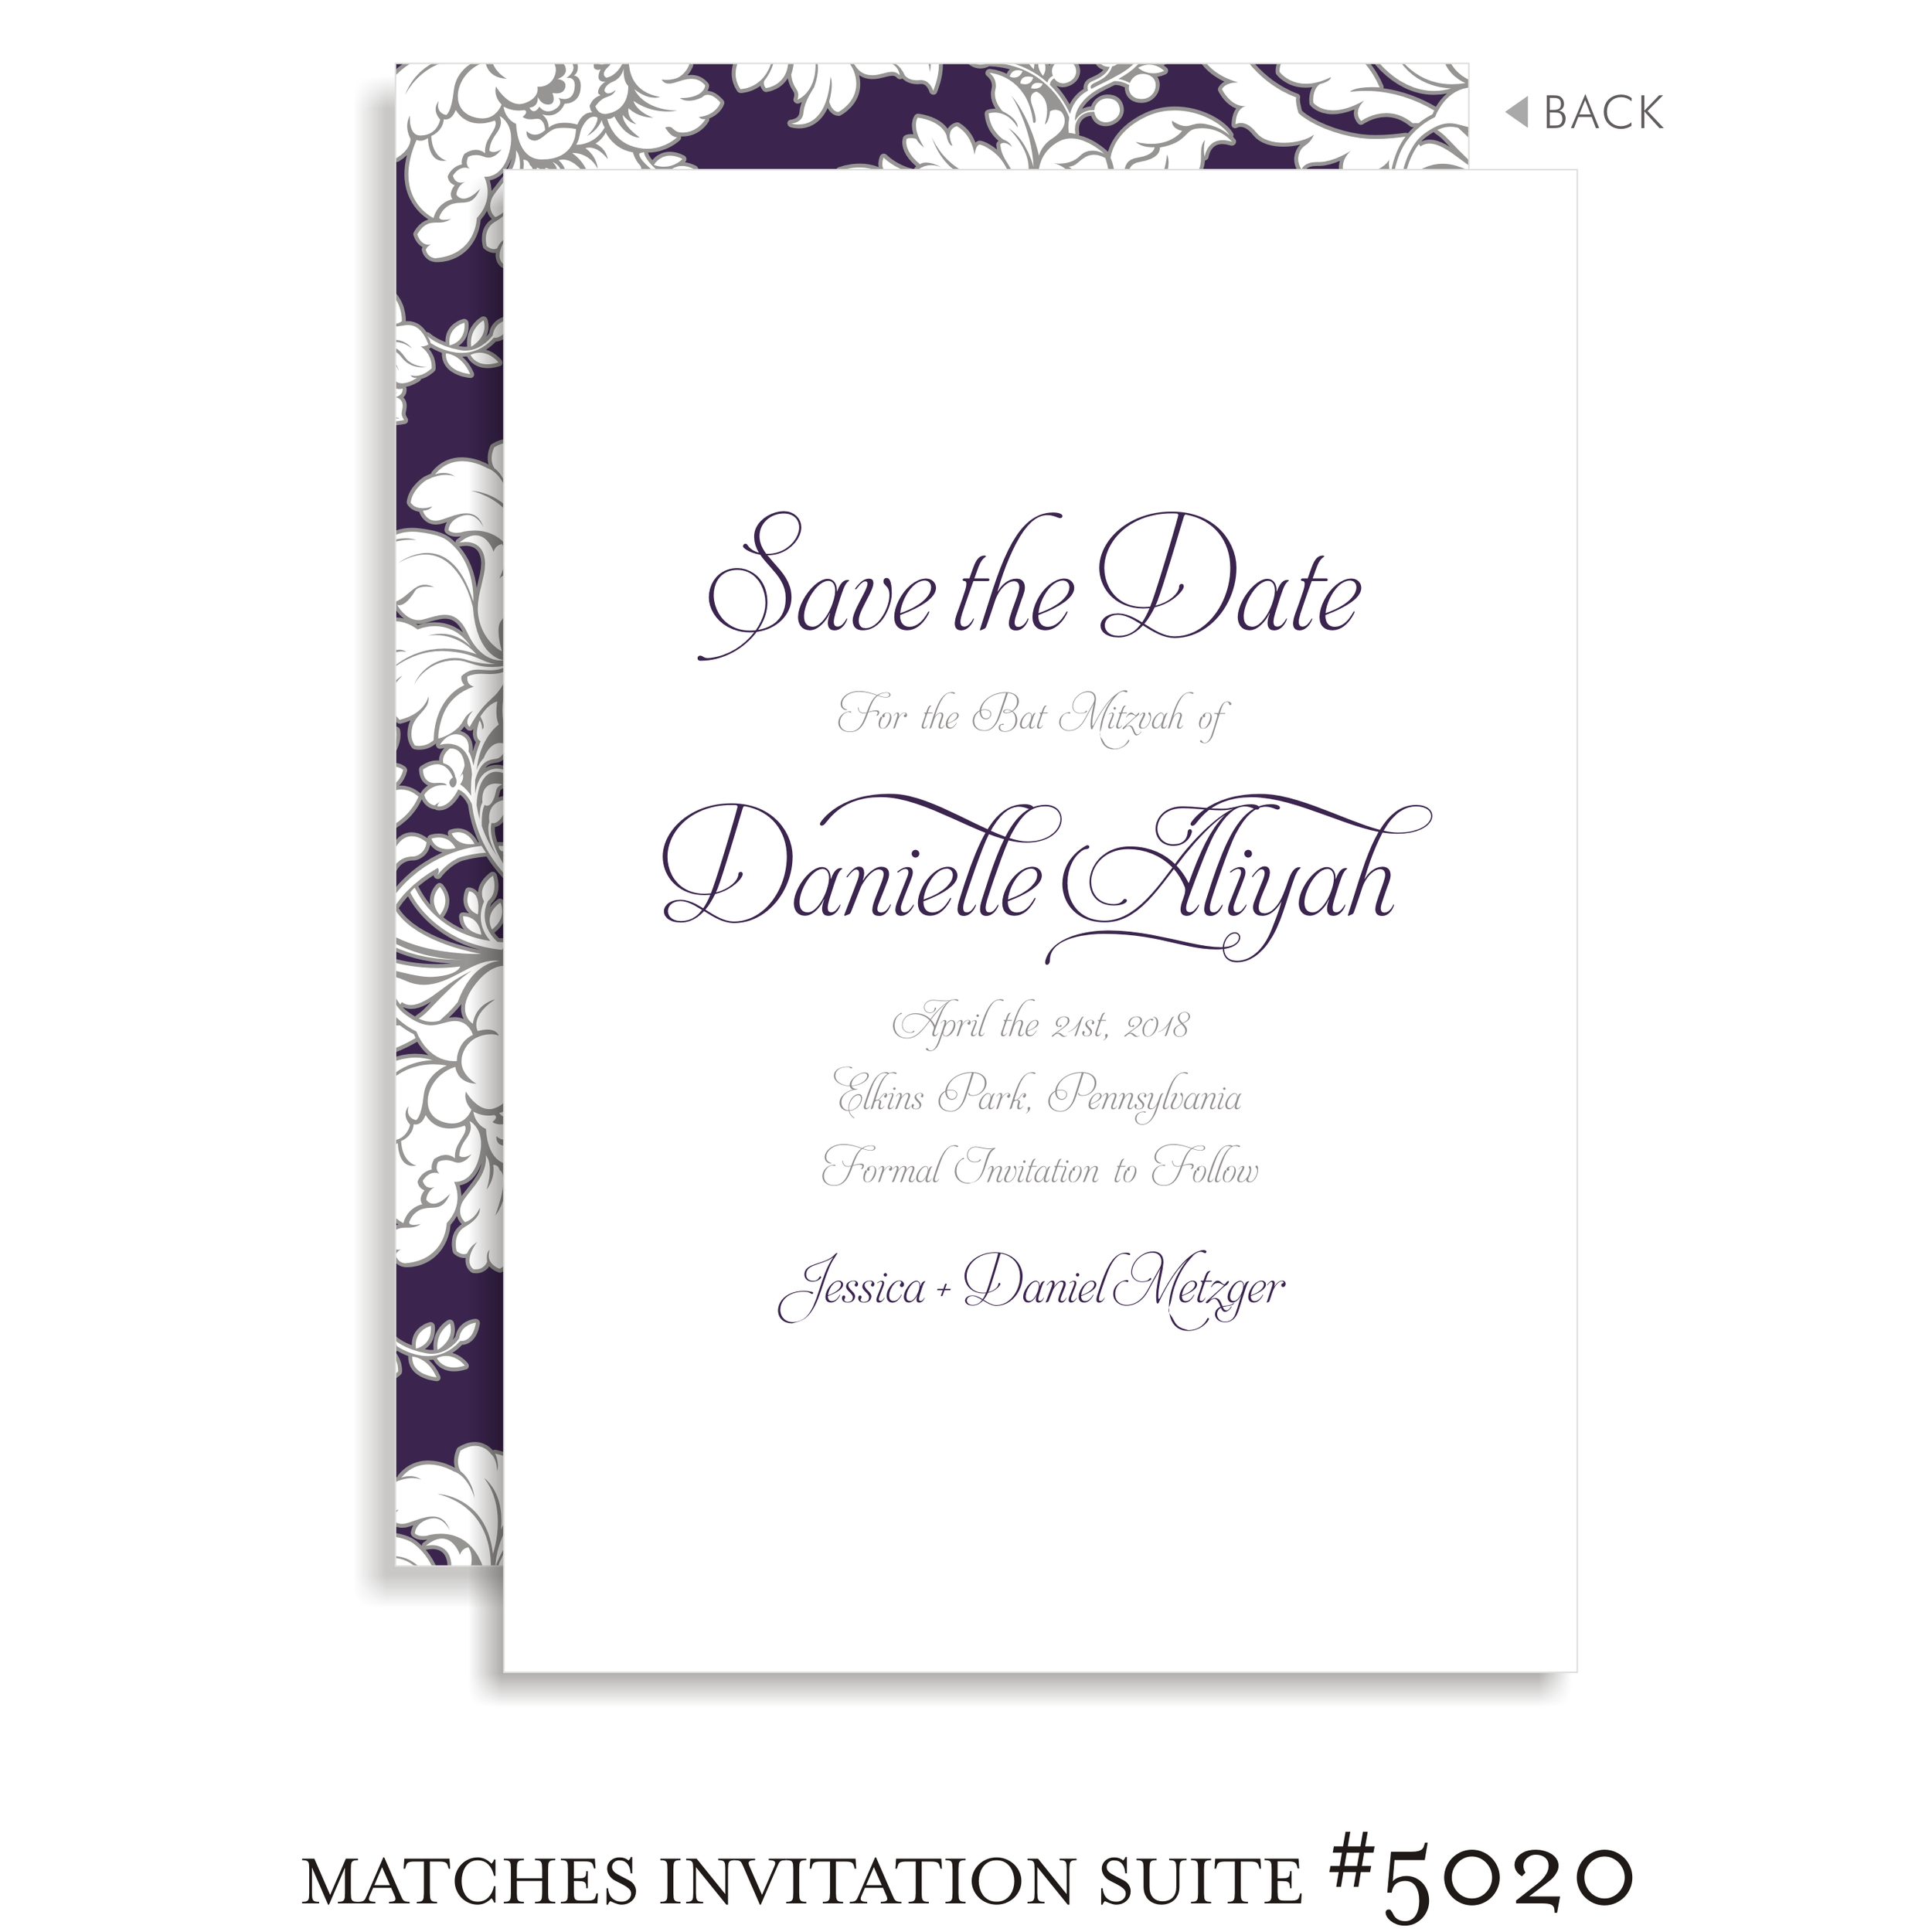 Save the Date Bat Mitzvah Suite 5120 - Danielle Alliyah